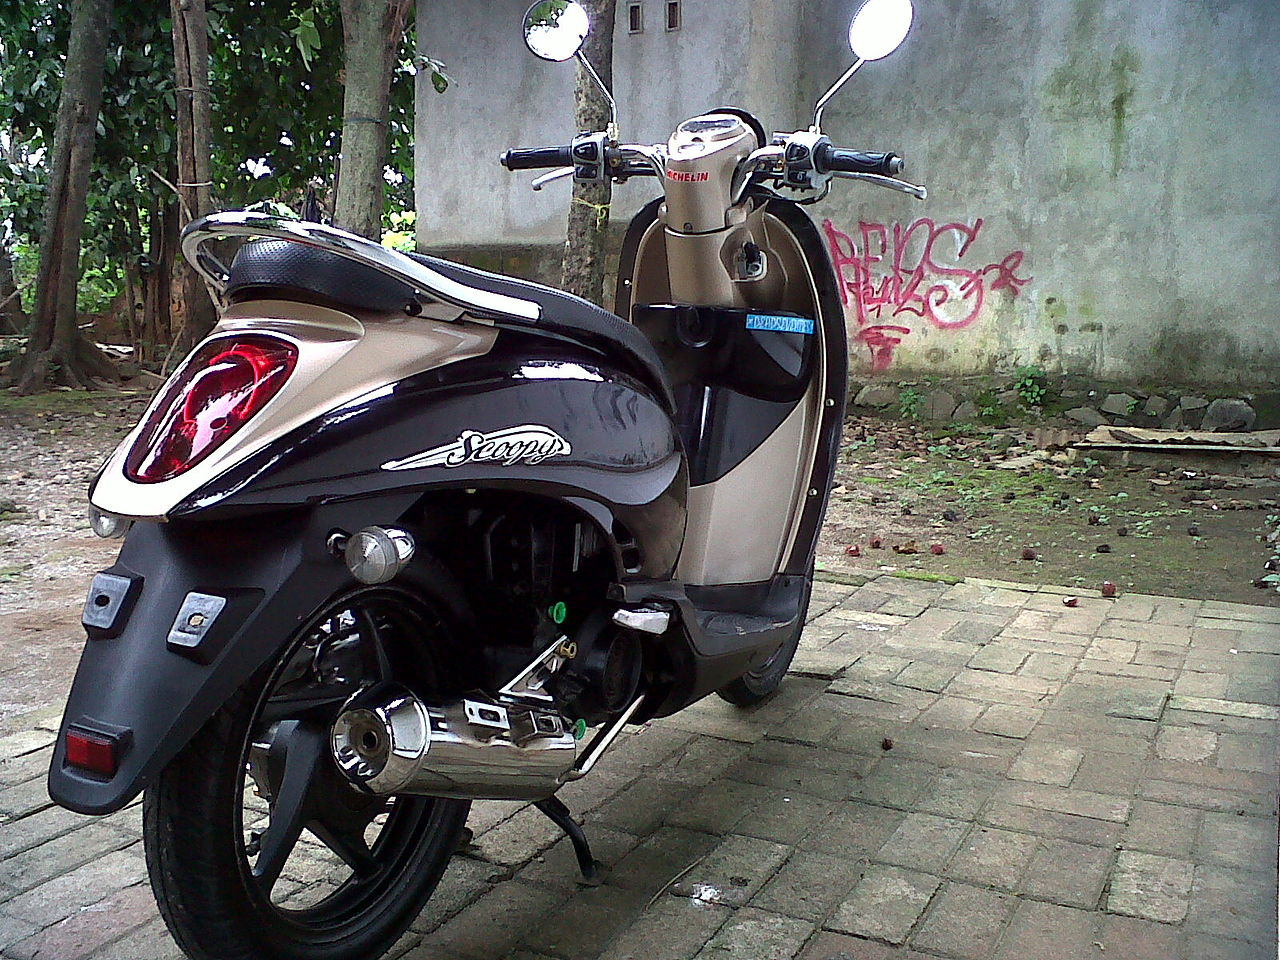 File:Scoopy thailand look , scoopy modifikasi , honda scoopy 2014-05